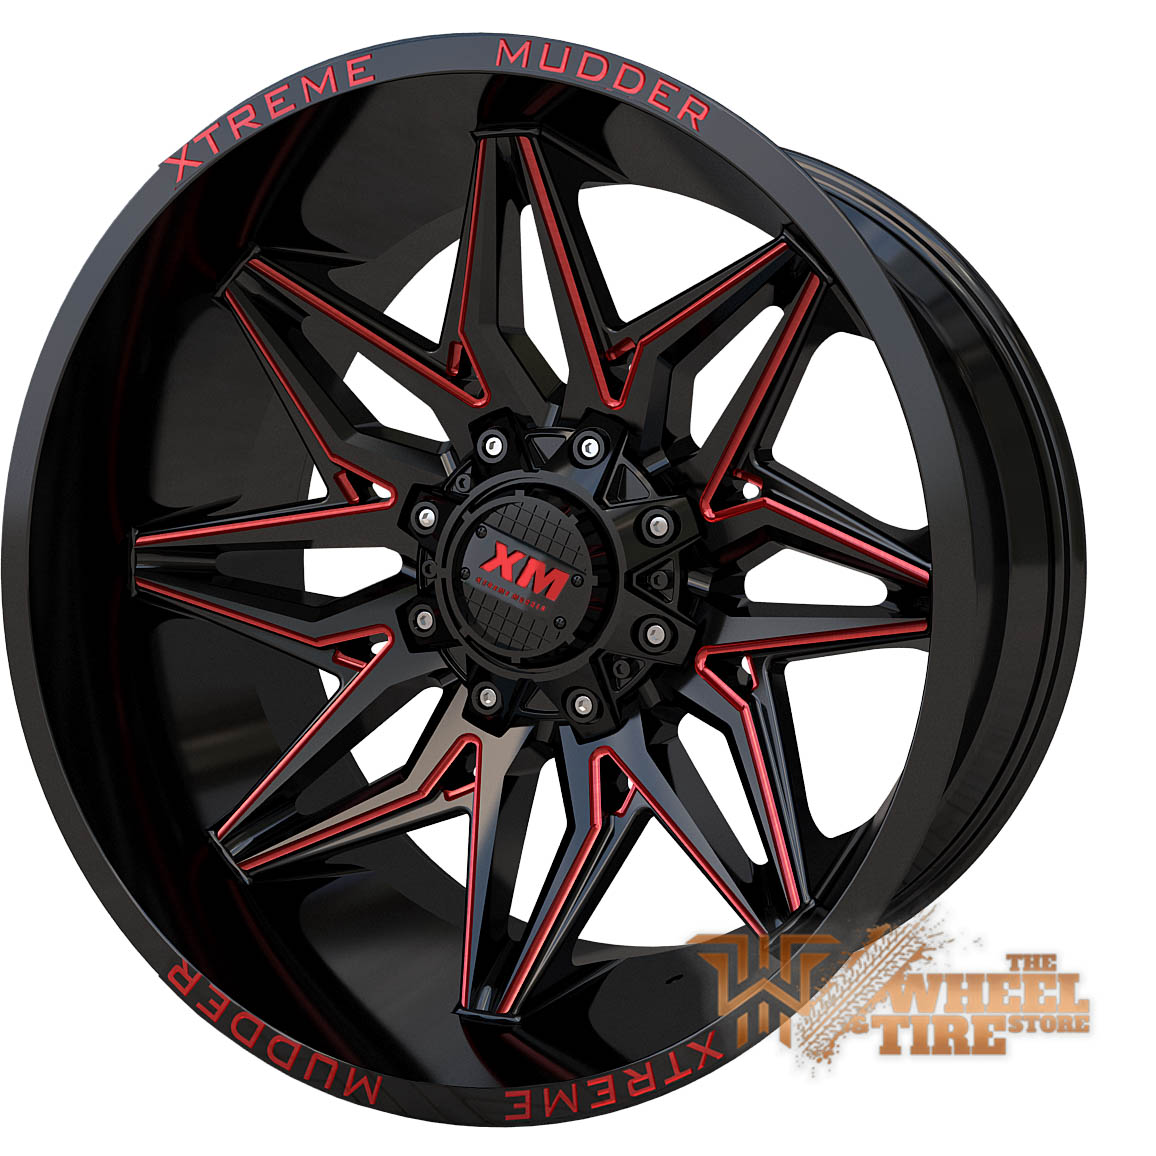 XTREME MUDDER XM-342 Wheel in Gloss Black Red Milled (Set of 4)